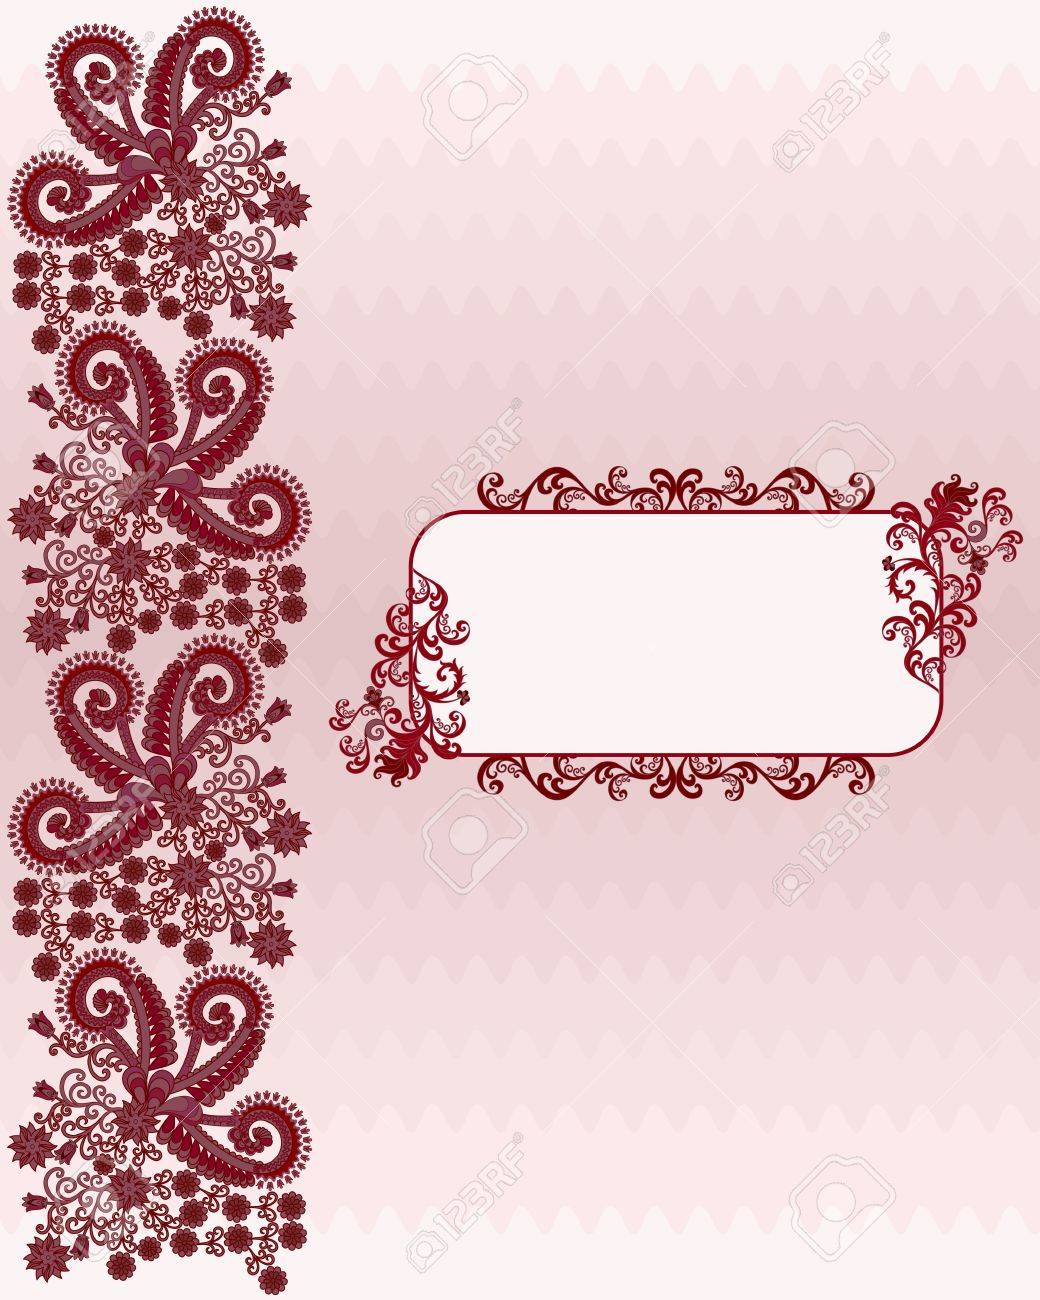 Maroon Certificate Border: Clip Art, Page Border, and Vector Graphics